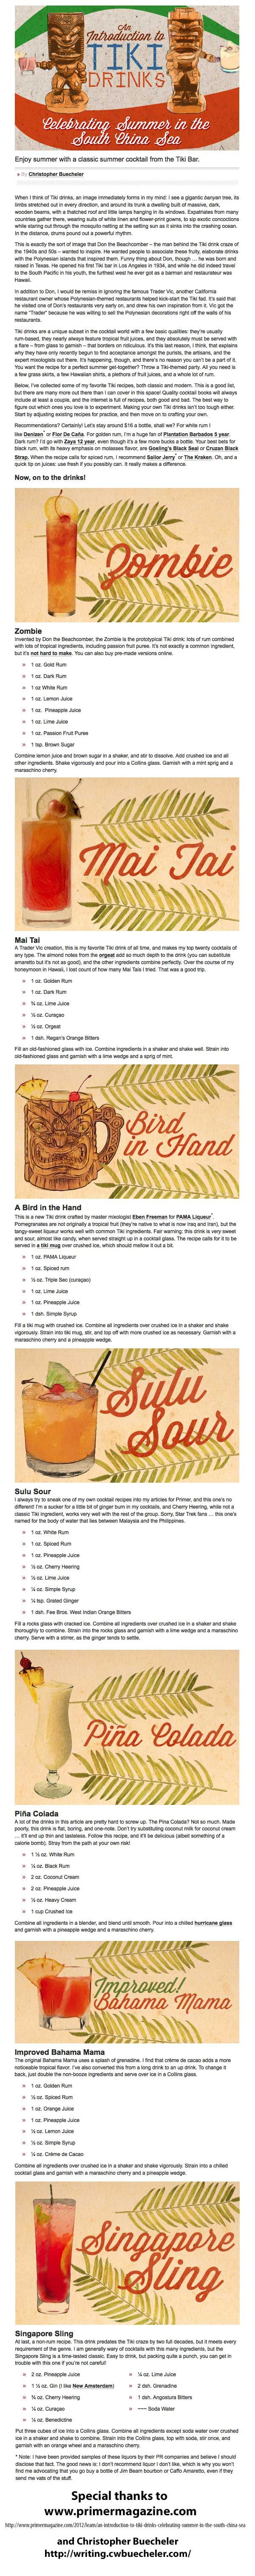 "Thanks to Christopher Buecheler and Primer Magazine for this wonderful presentation of ""TIKI"" drinks recipes . . . FINS UP !!! Links are here to read the full article."